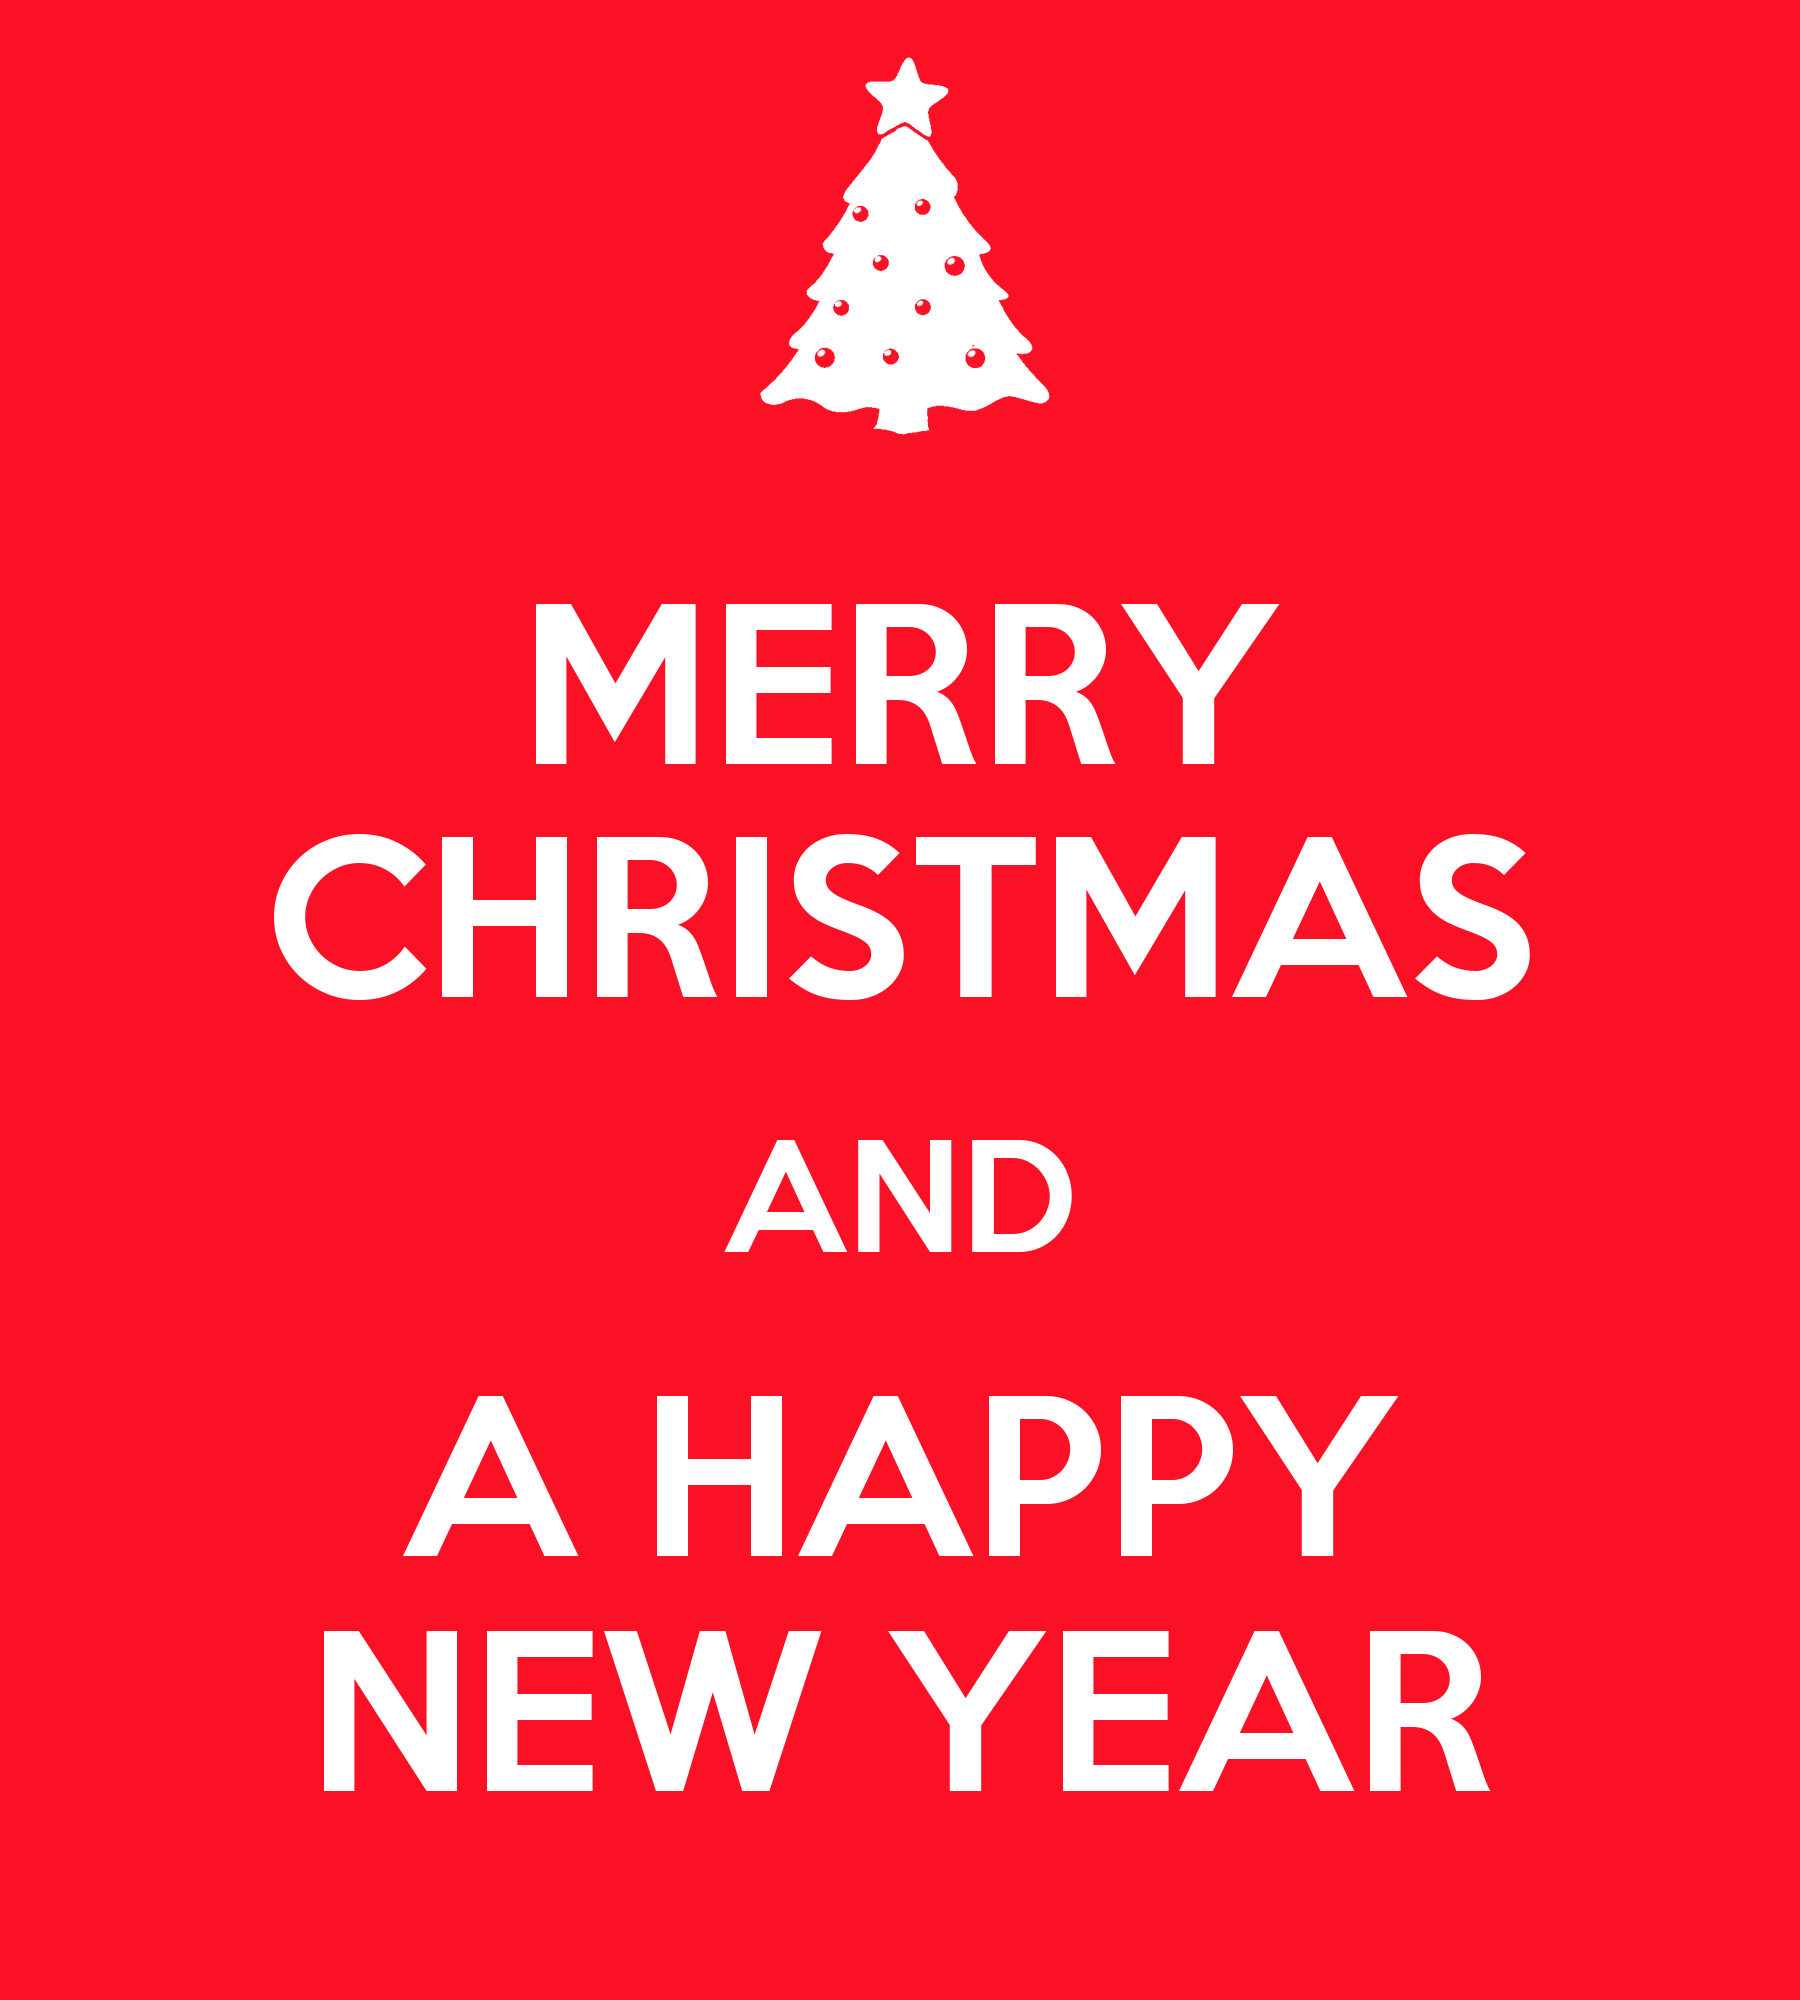 Keeping Christmas All The Year: MERRY CHRISTMAS AND A HAPPY NEW YEAR Poster